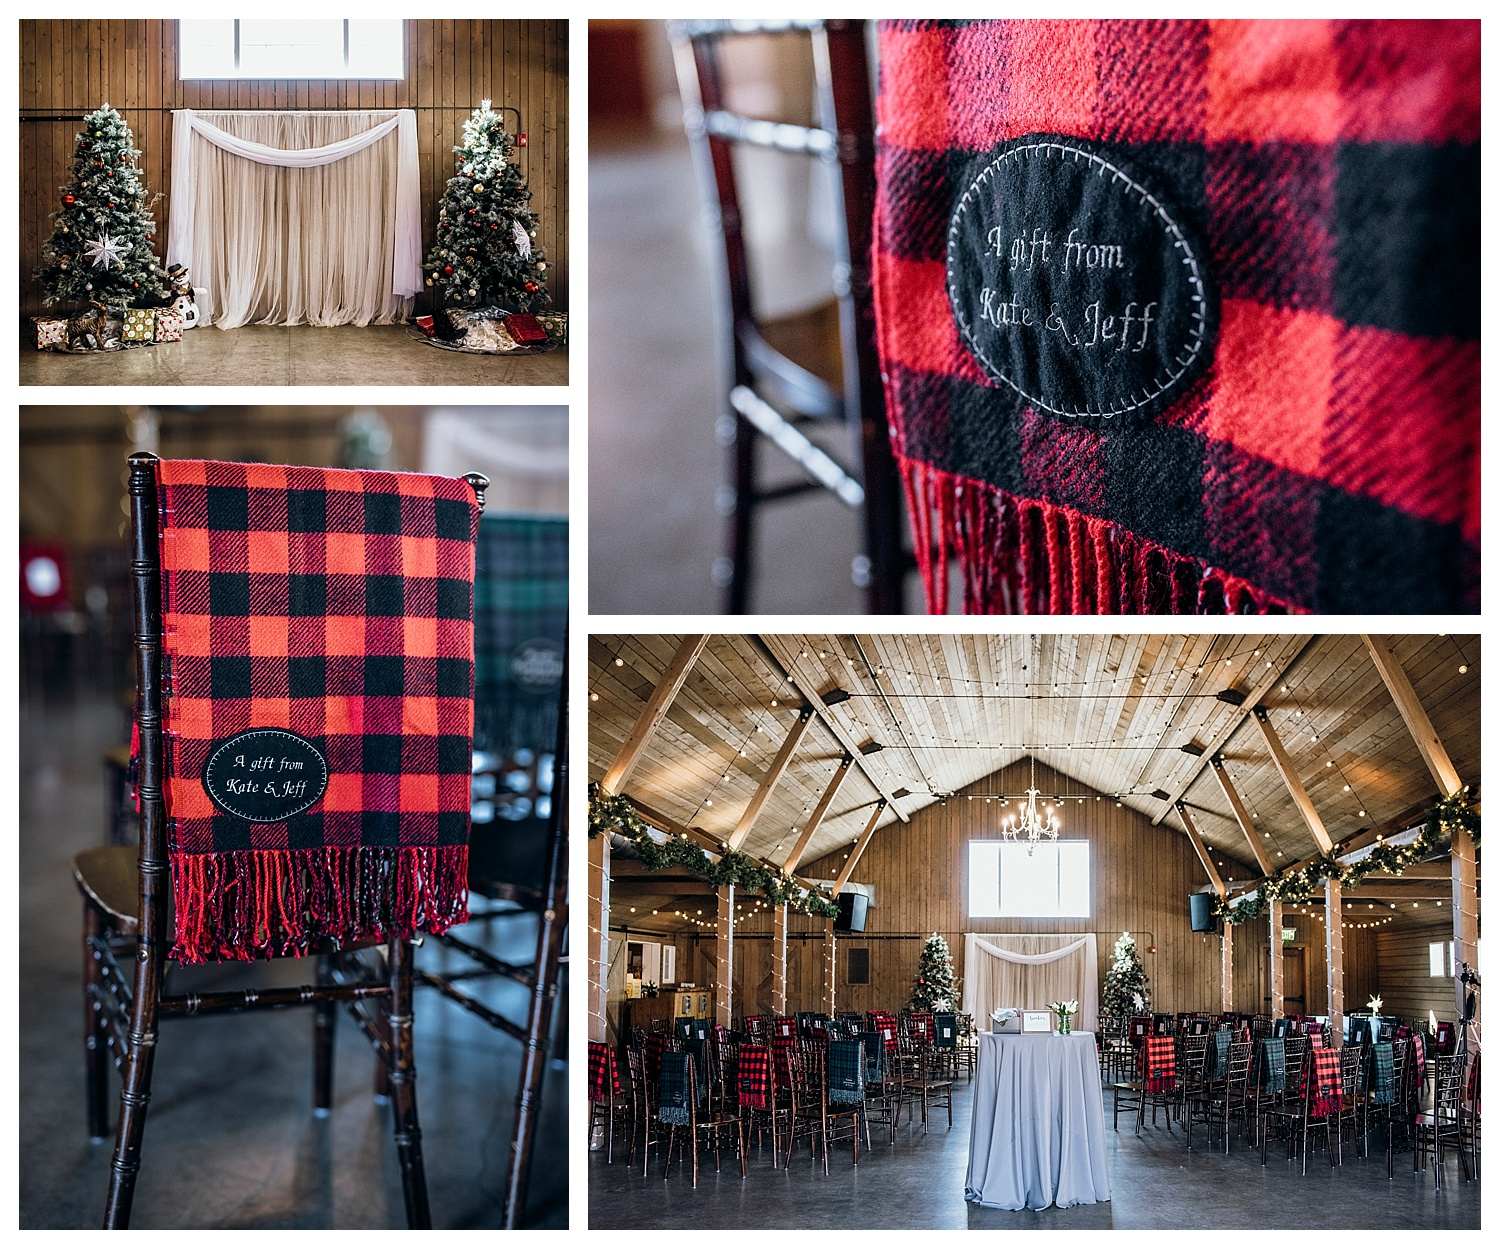 Blanket_Wedding_Favor_The_Barn_At_Raccoon_Creek_Wedding_Apollo_Fields_005.jpg